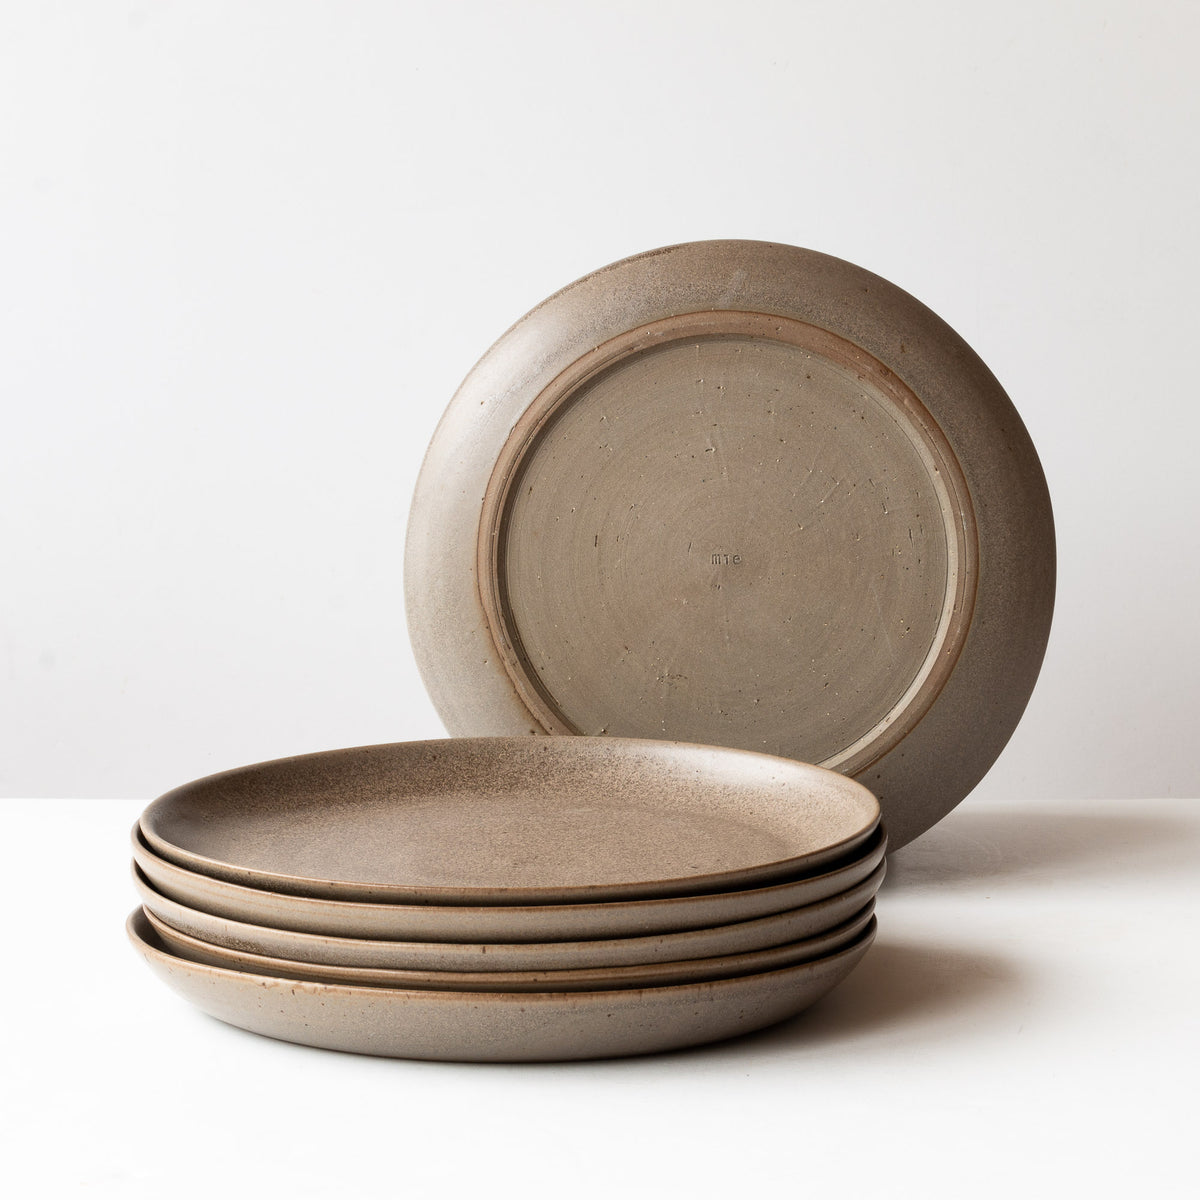 Taupe - Three Grey Stoneware Dinner Plates - Sold by Chic & Basta